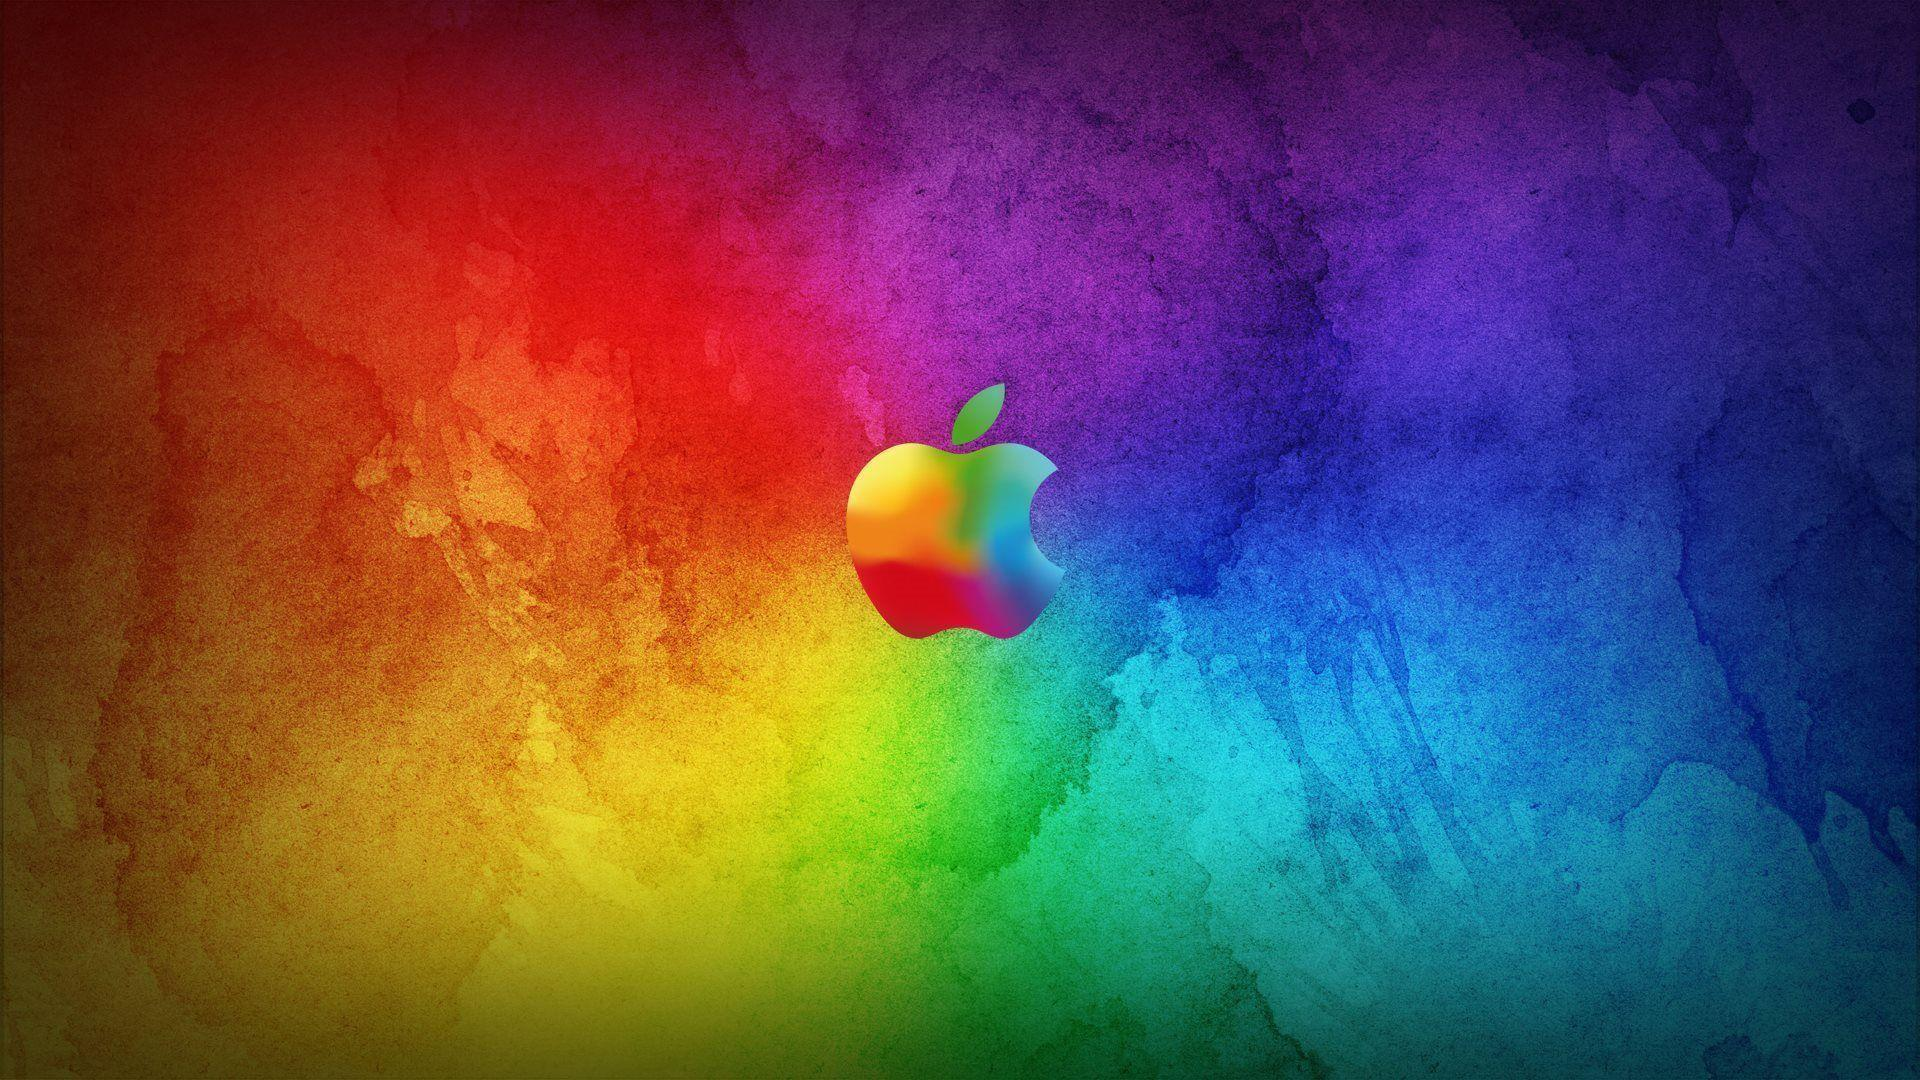 Download Amazing Colorful Apple Logo Wallpaper | Full HD Wallpapers